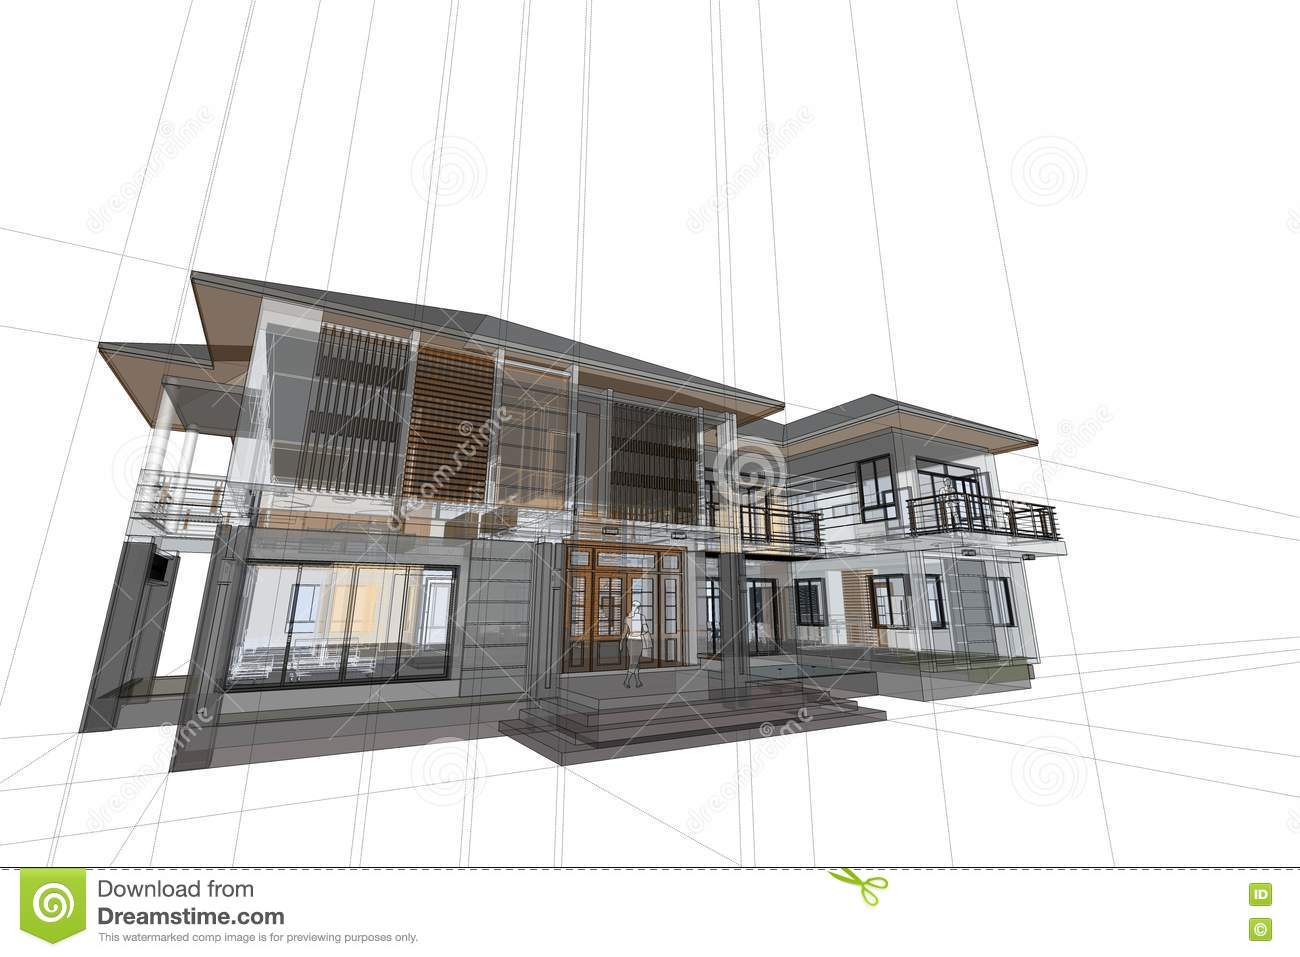 Architectural drawings of modern houses interior design for Architecture house drawing